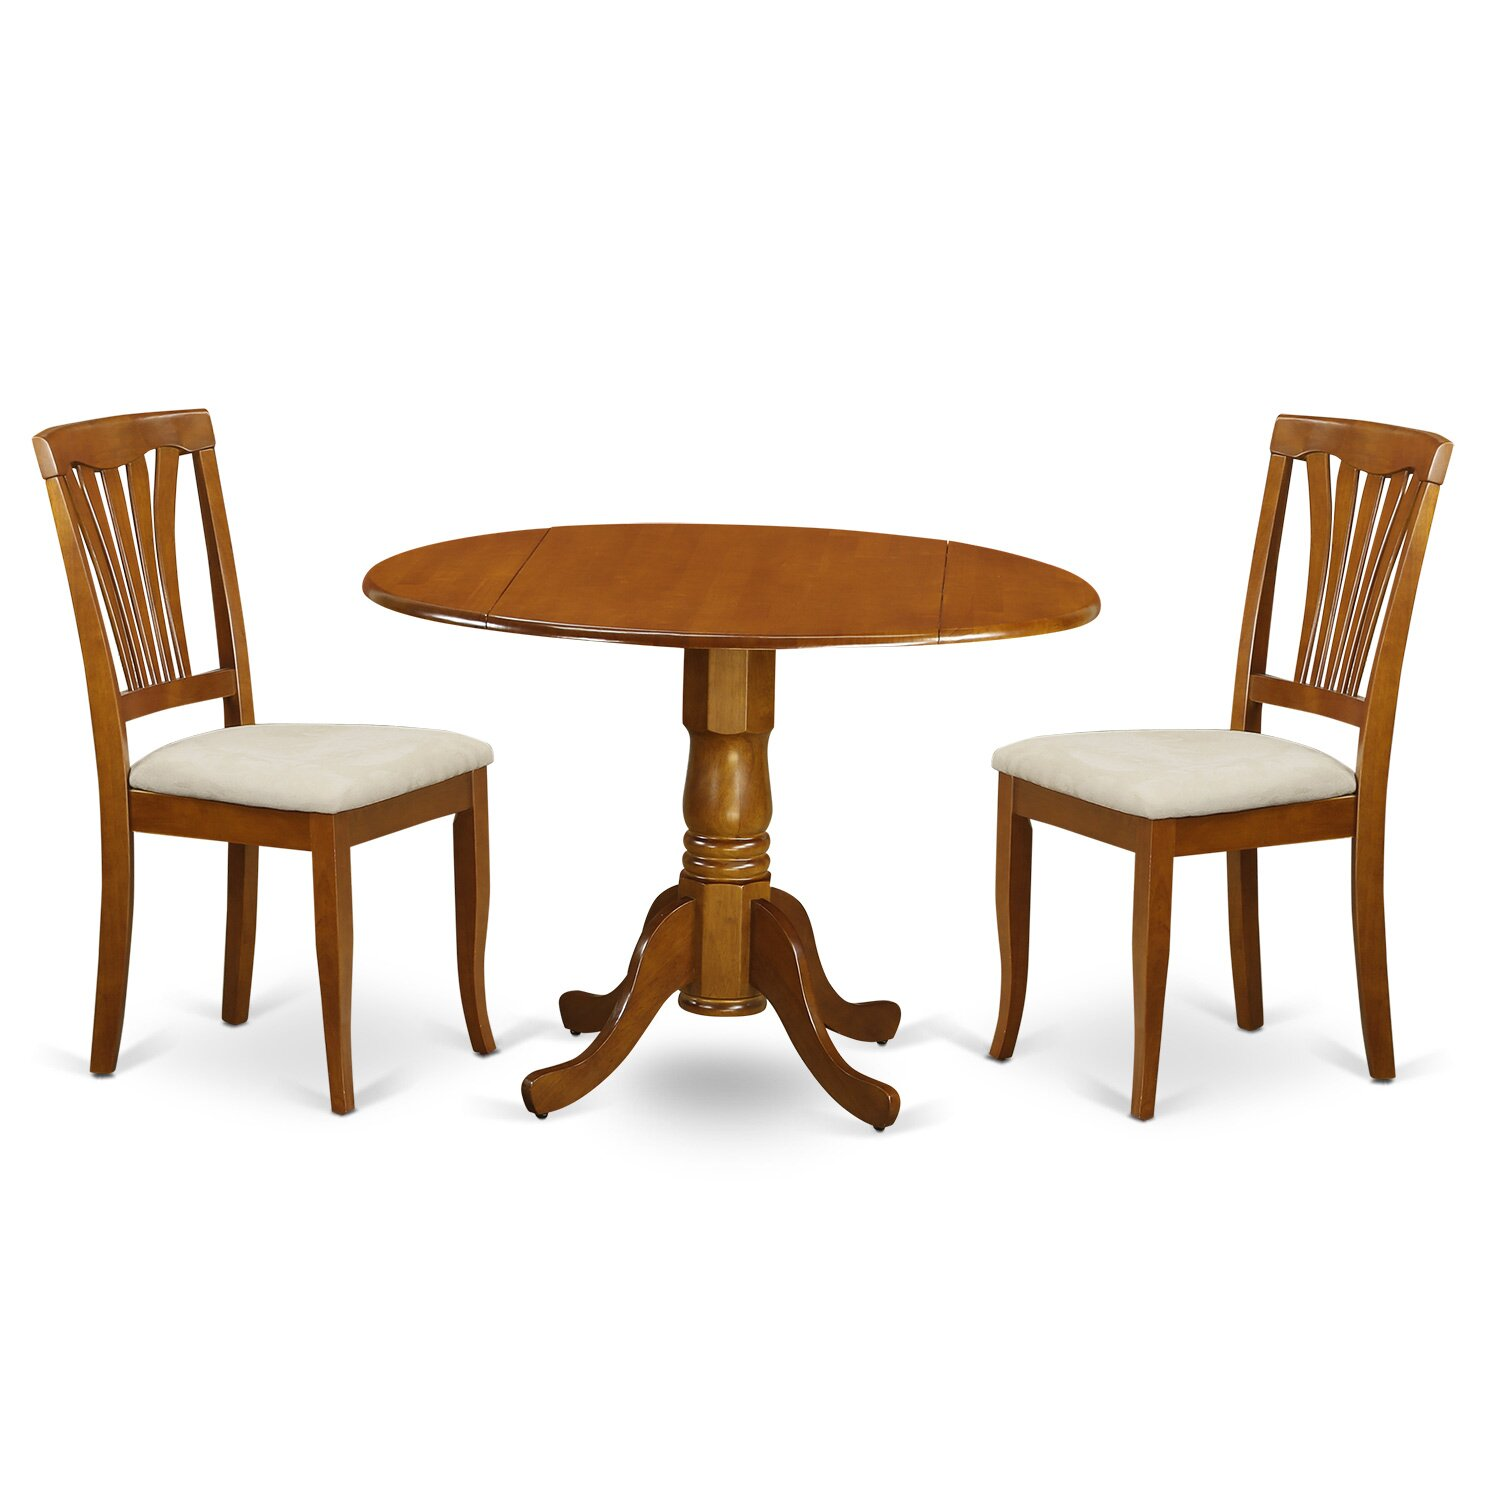 3 chair dining set